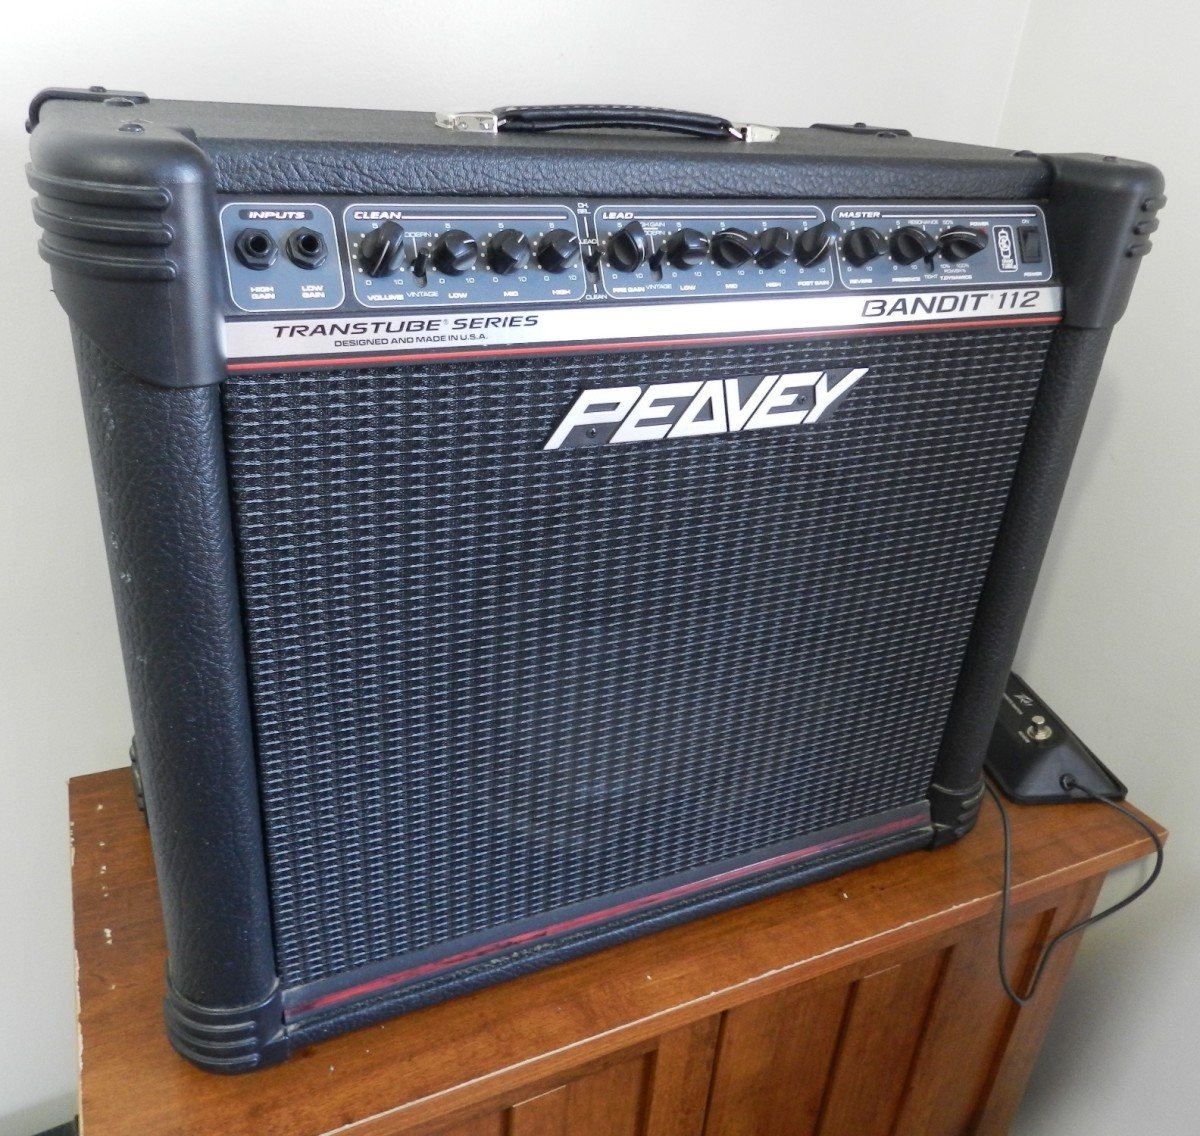 My Peavey Bandit is still going strong after more than years.